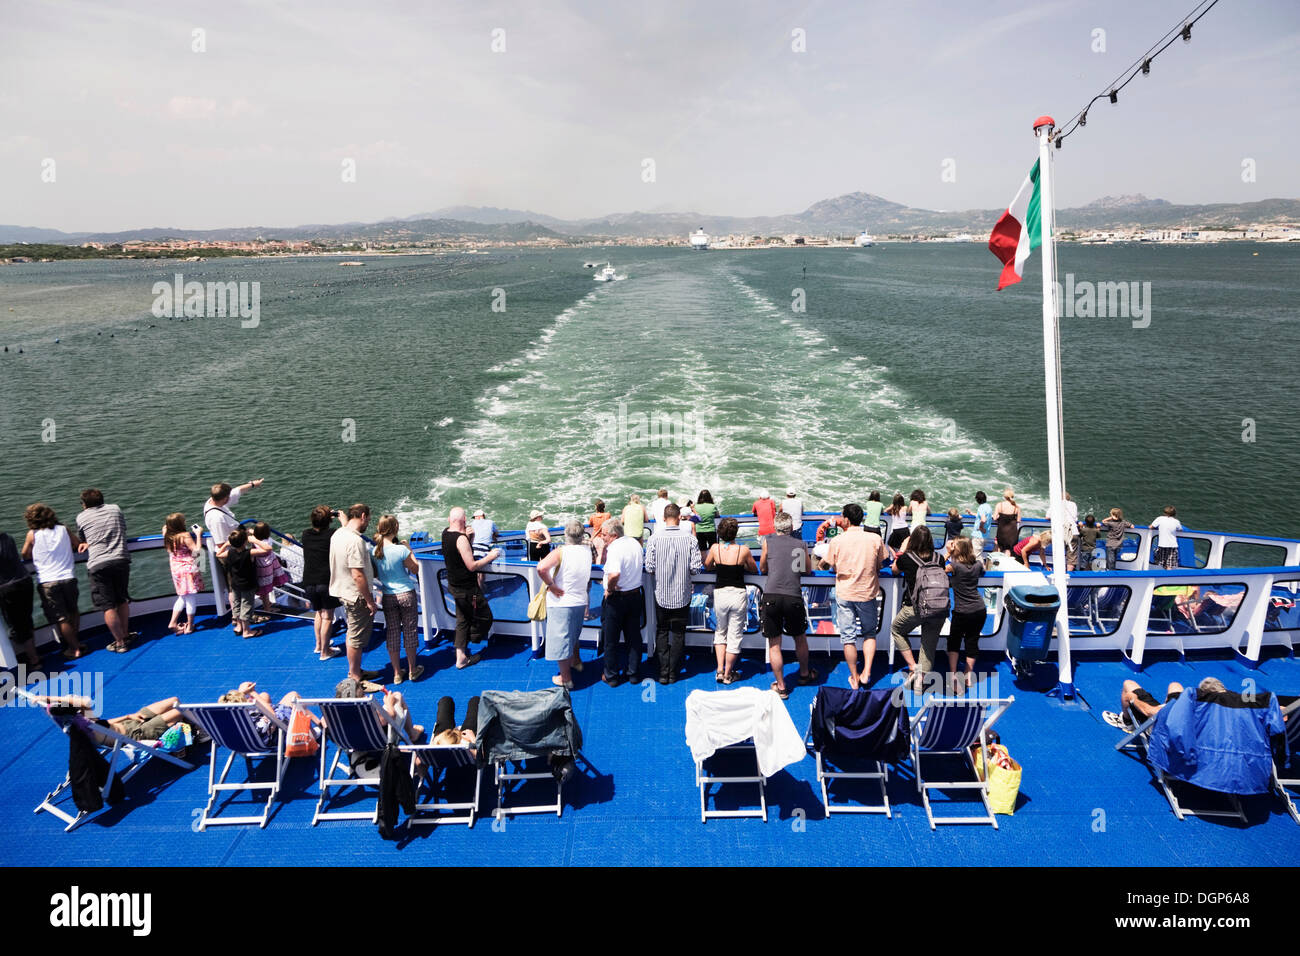 Travellers on the car ferry from Olbia to Livorno, Gallura Province, Sardinia, Italy, Europe Stock Photo